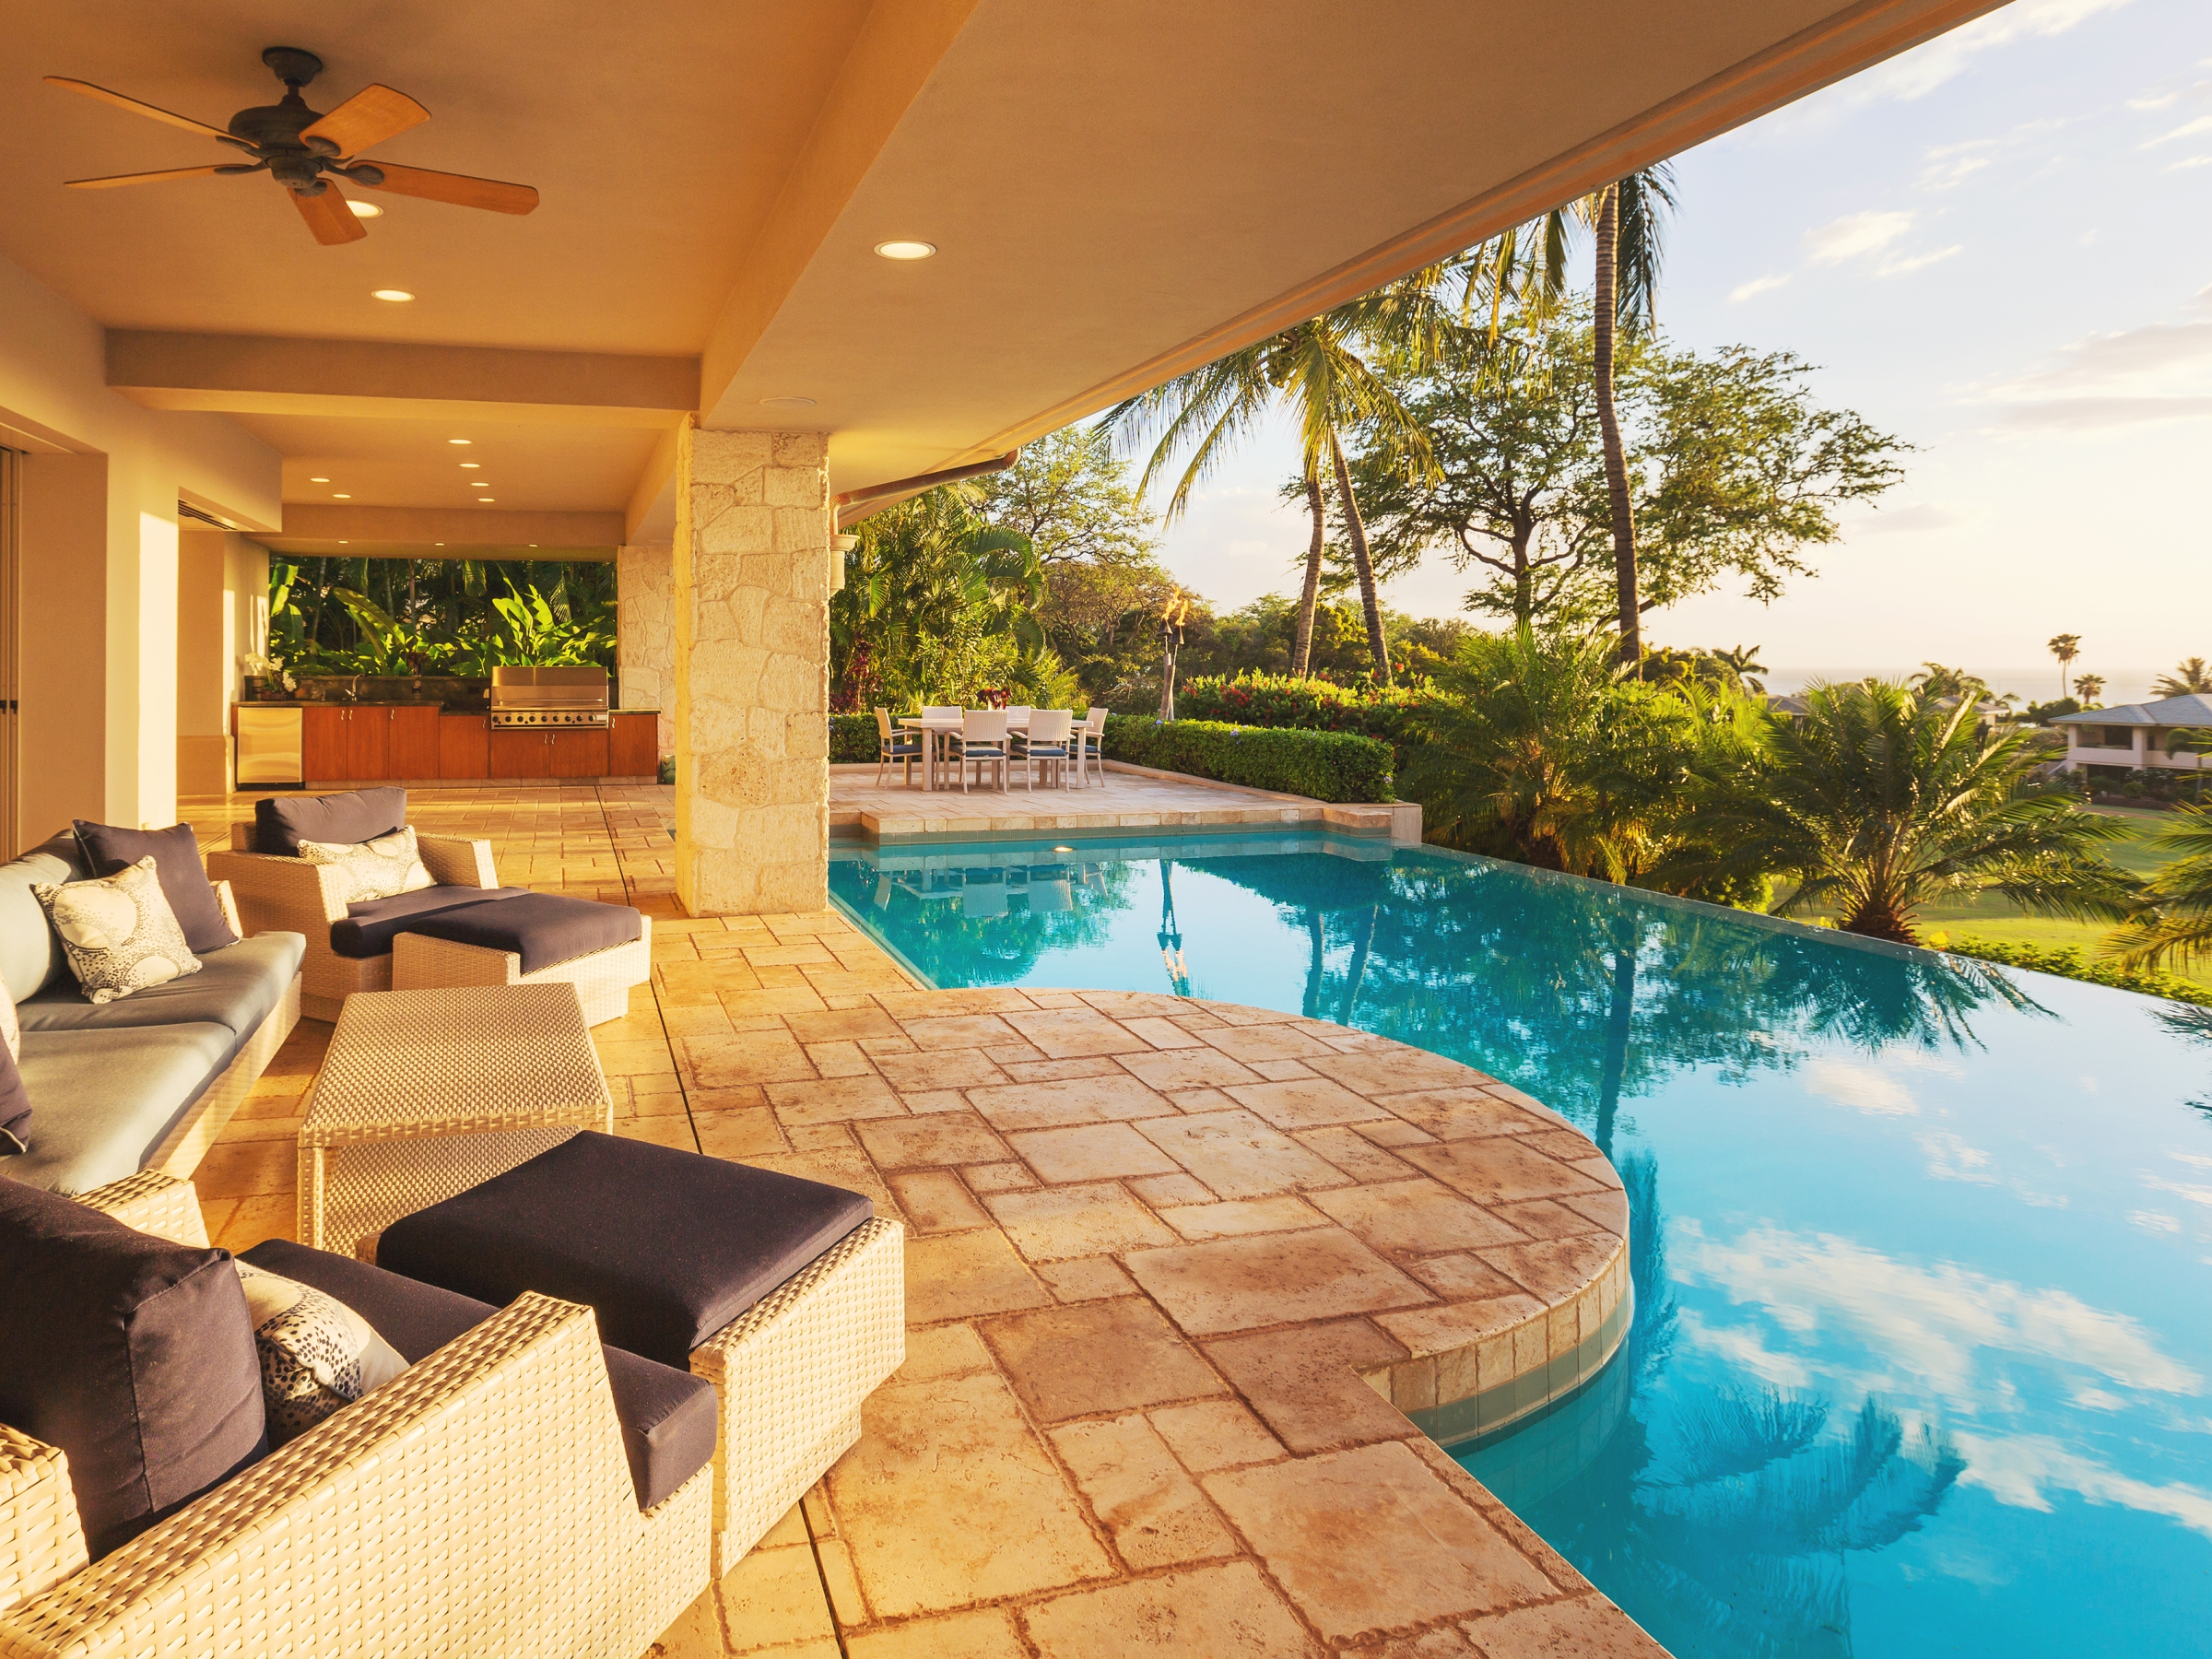 Exceptional Transform Your Property Into A Private Oasis